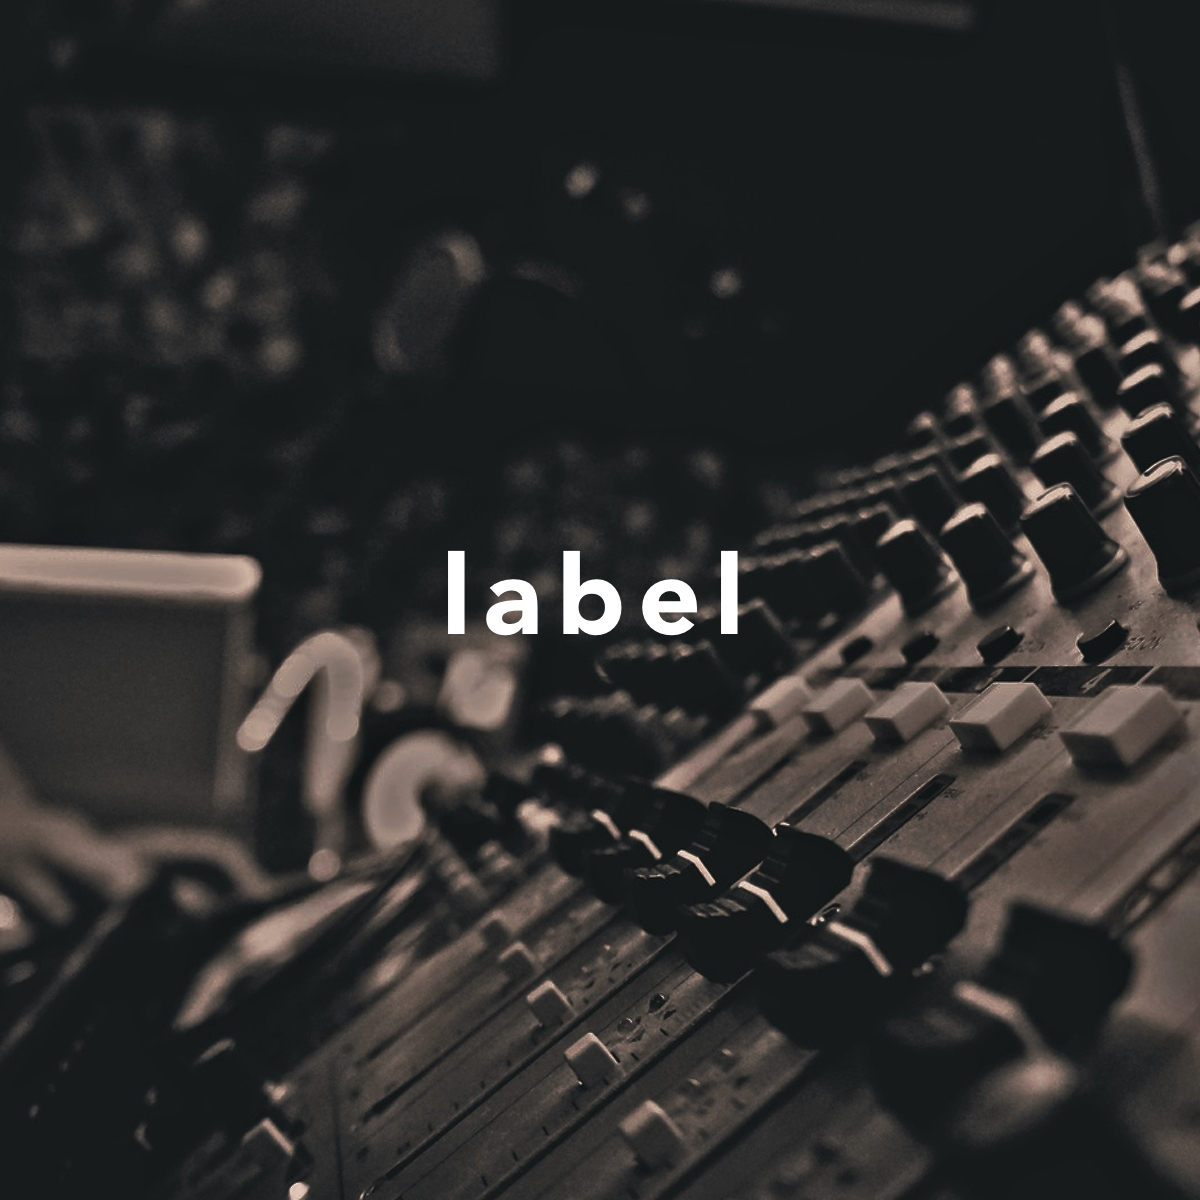 click here to listen to past groundwerk submissions